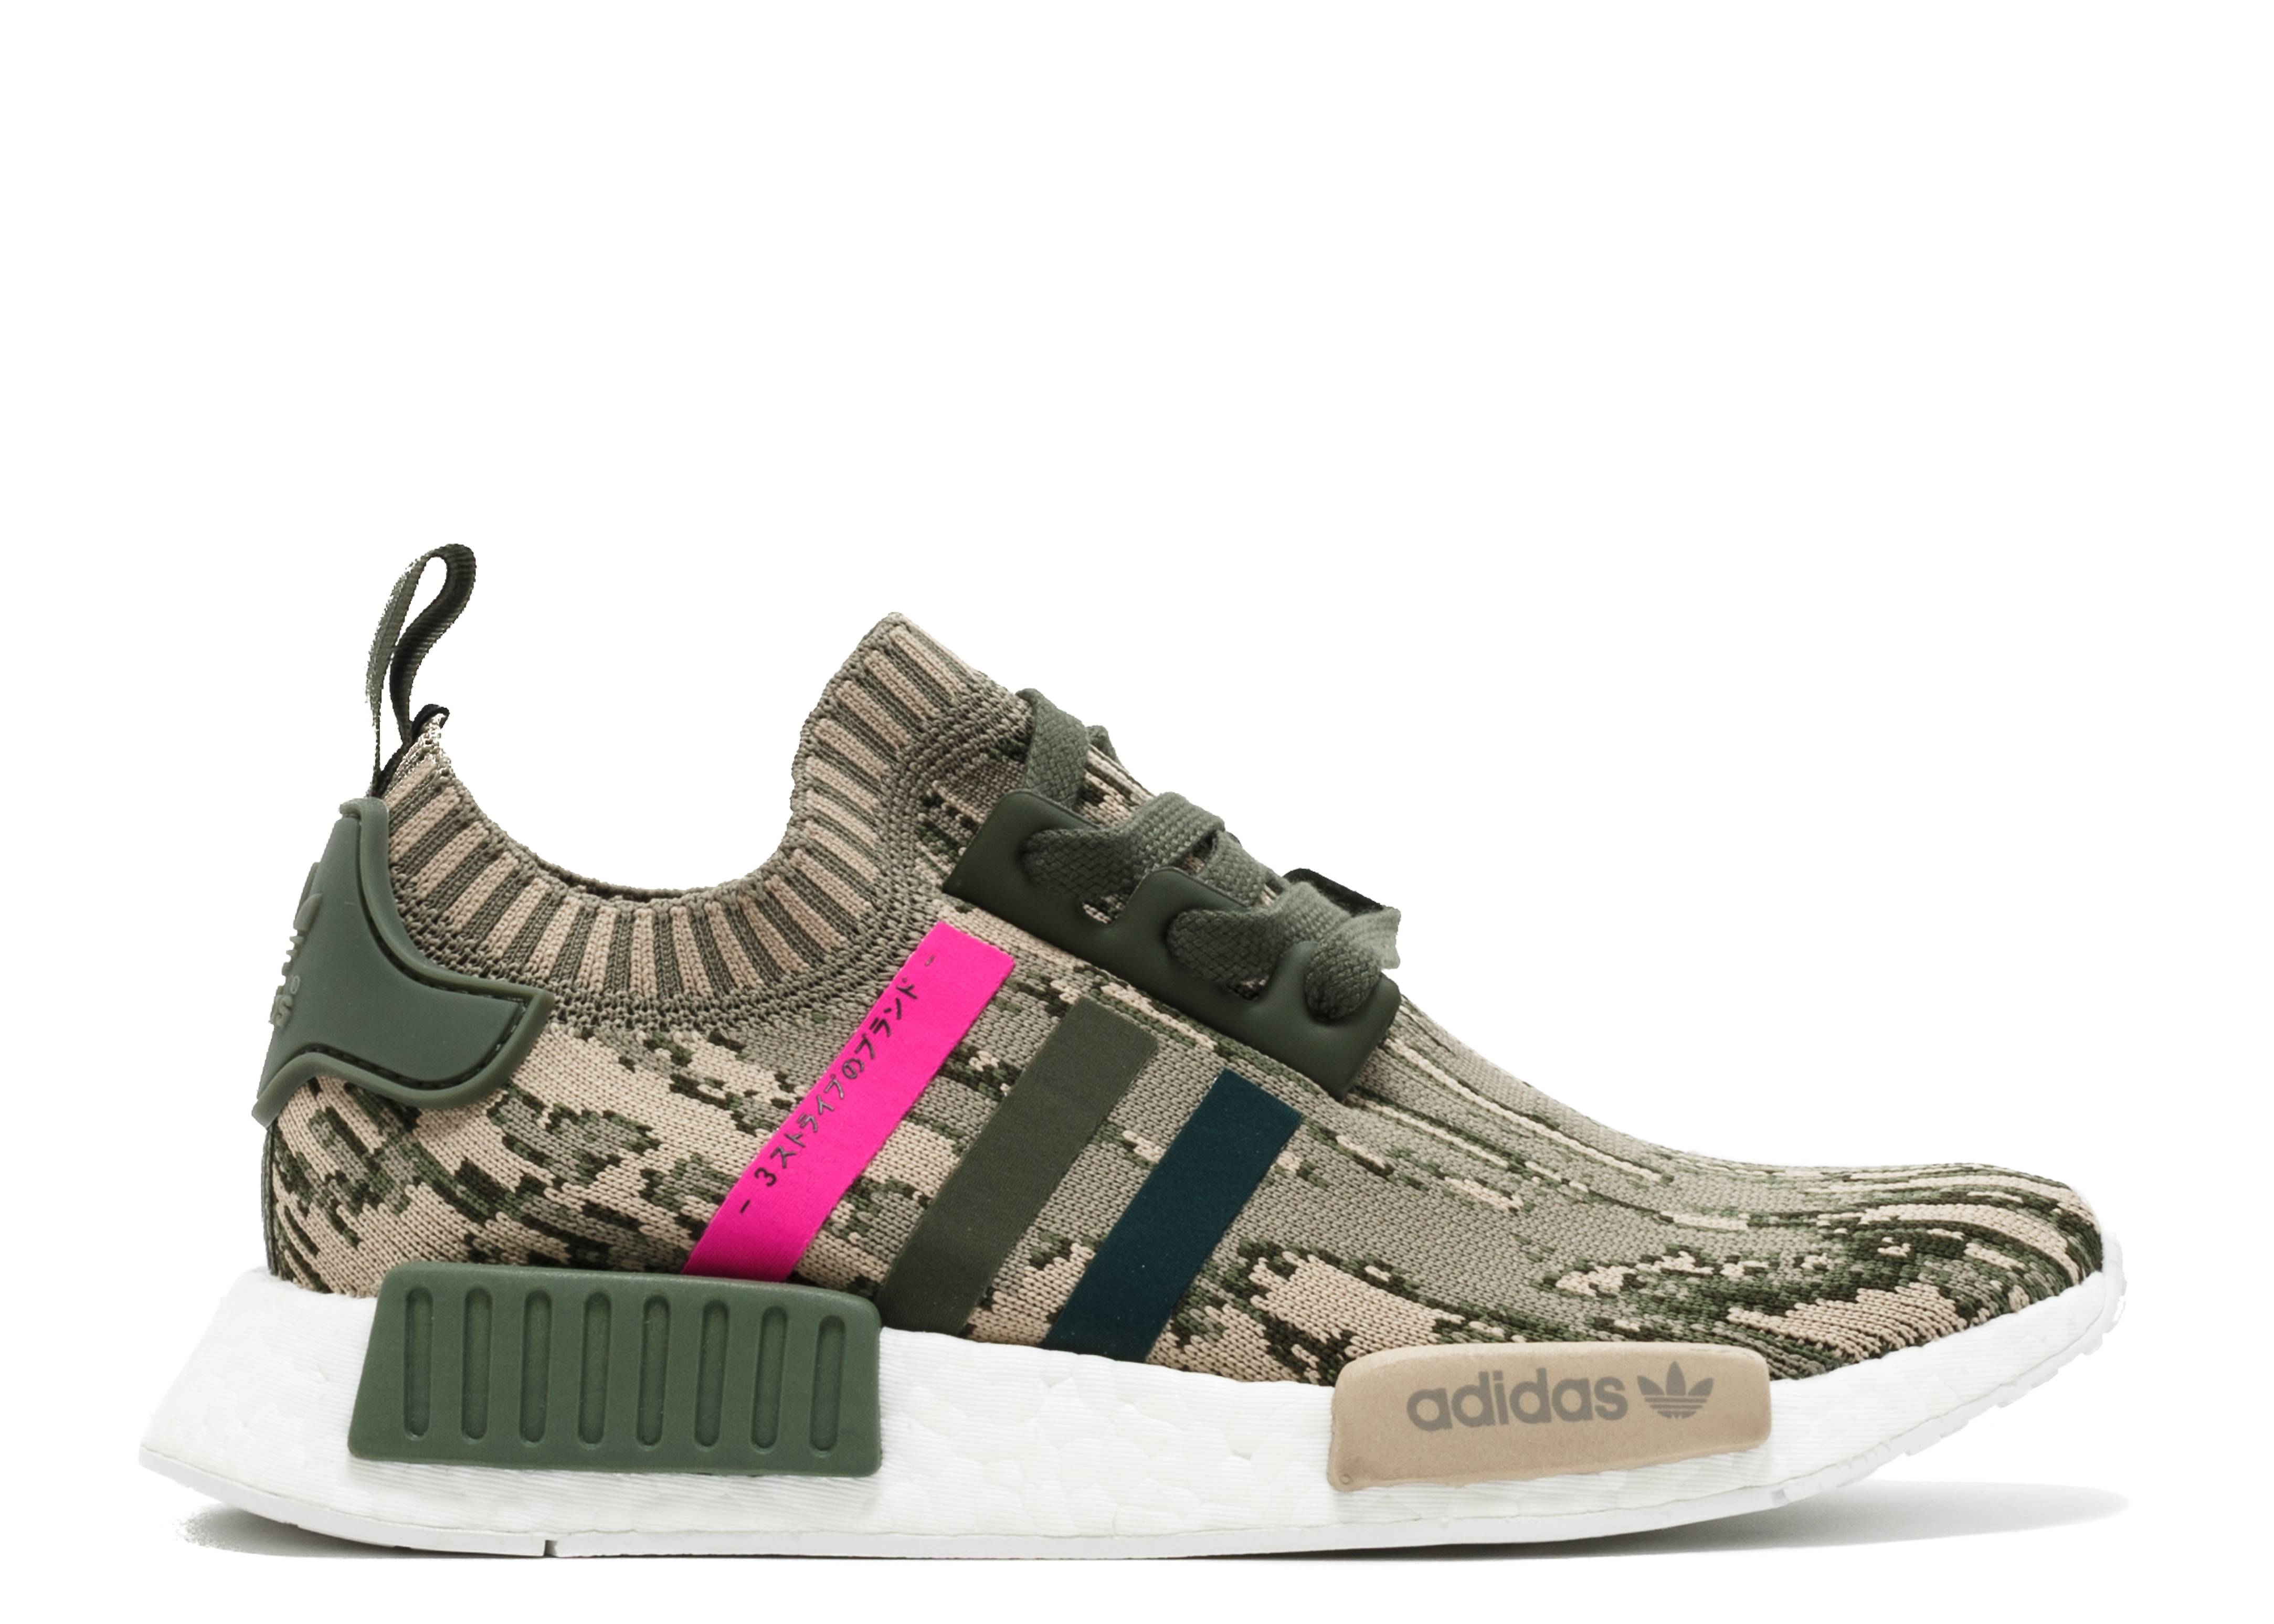 4ff248a2337e NMD R1 W PK - Adidas - by9864 - green pink green